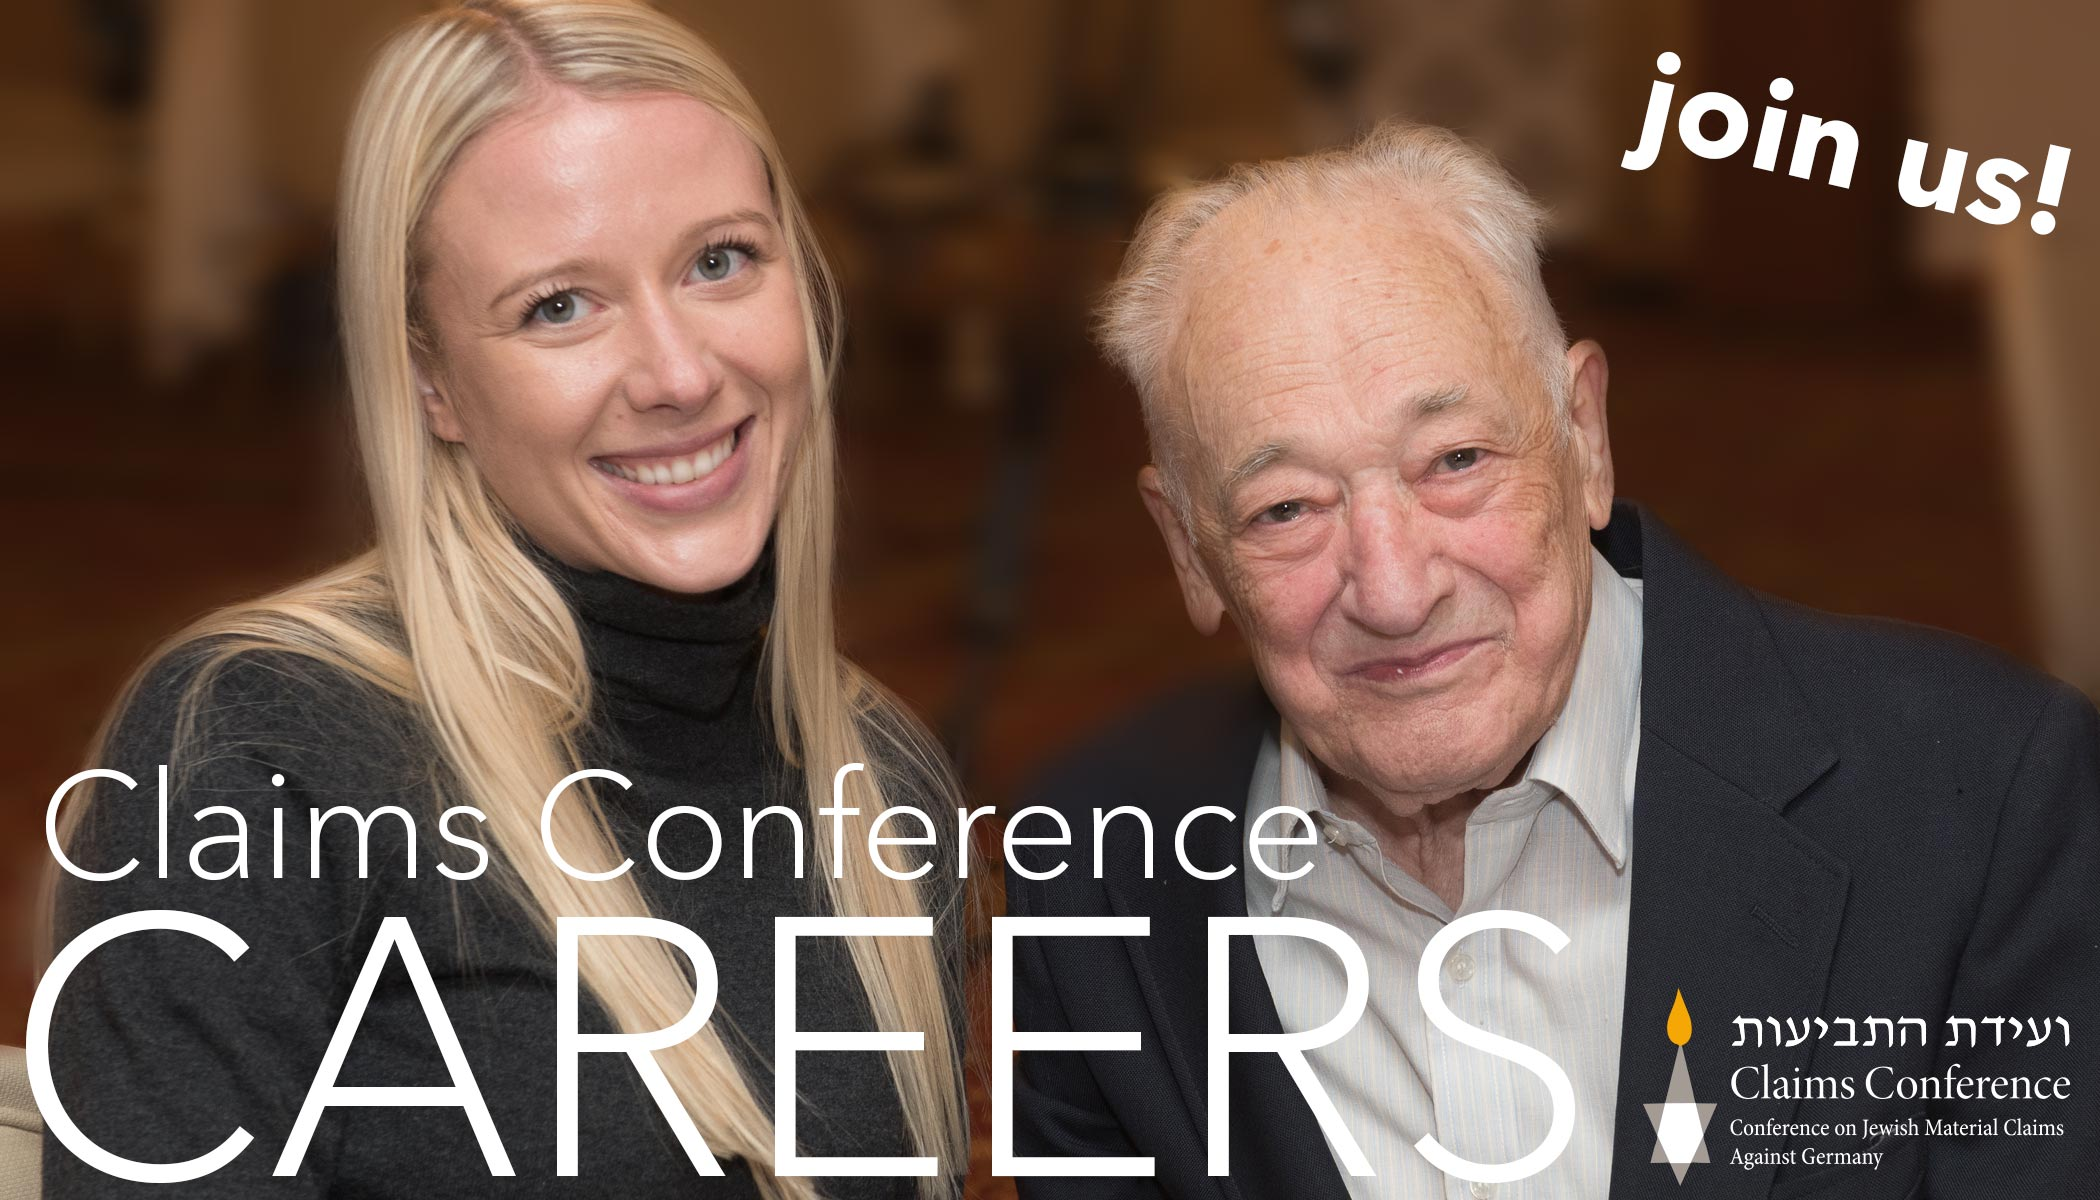 Claims Conference Careers